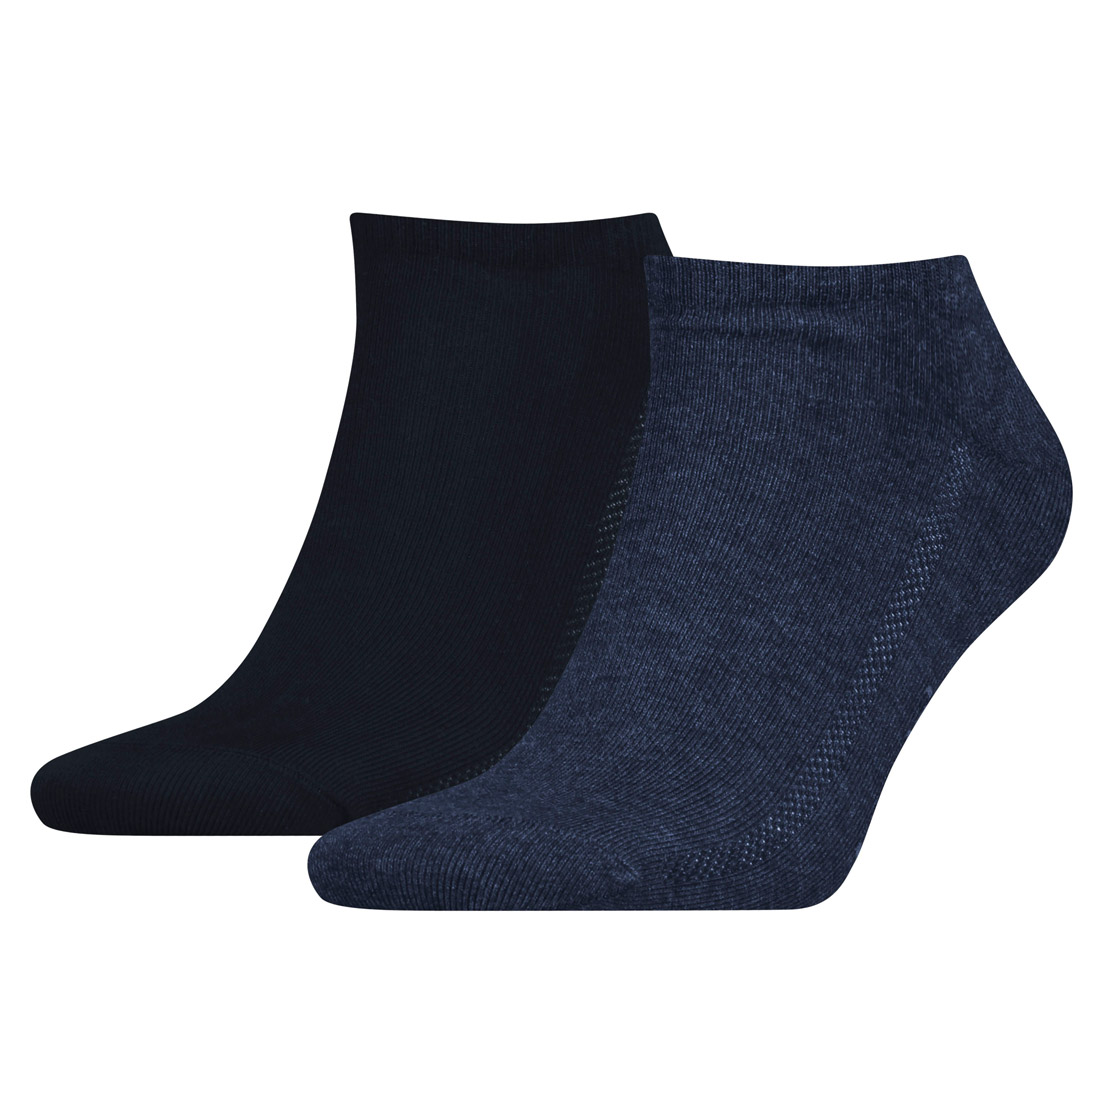 2 Paar Levis Unisex Socken 168SF Low Cut Sneakersocken Kurzsocken 39-42, 460 denim blue von Levi's